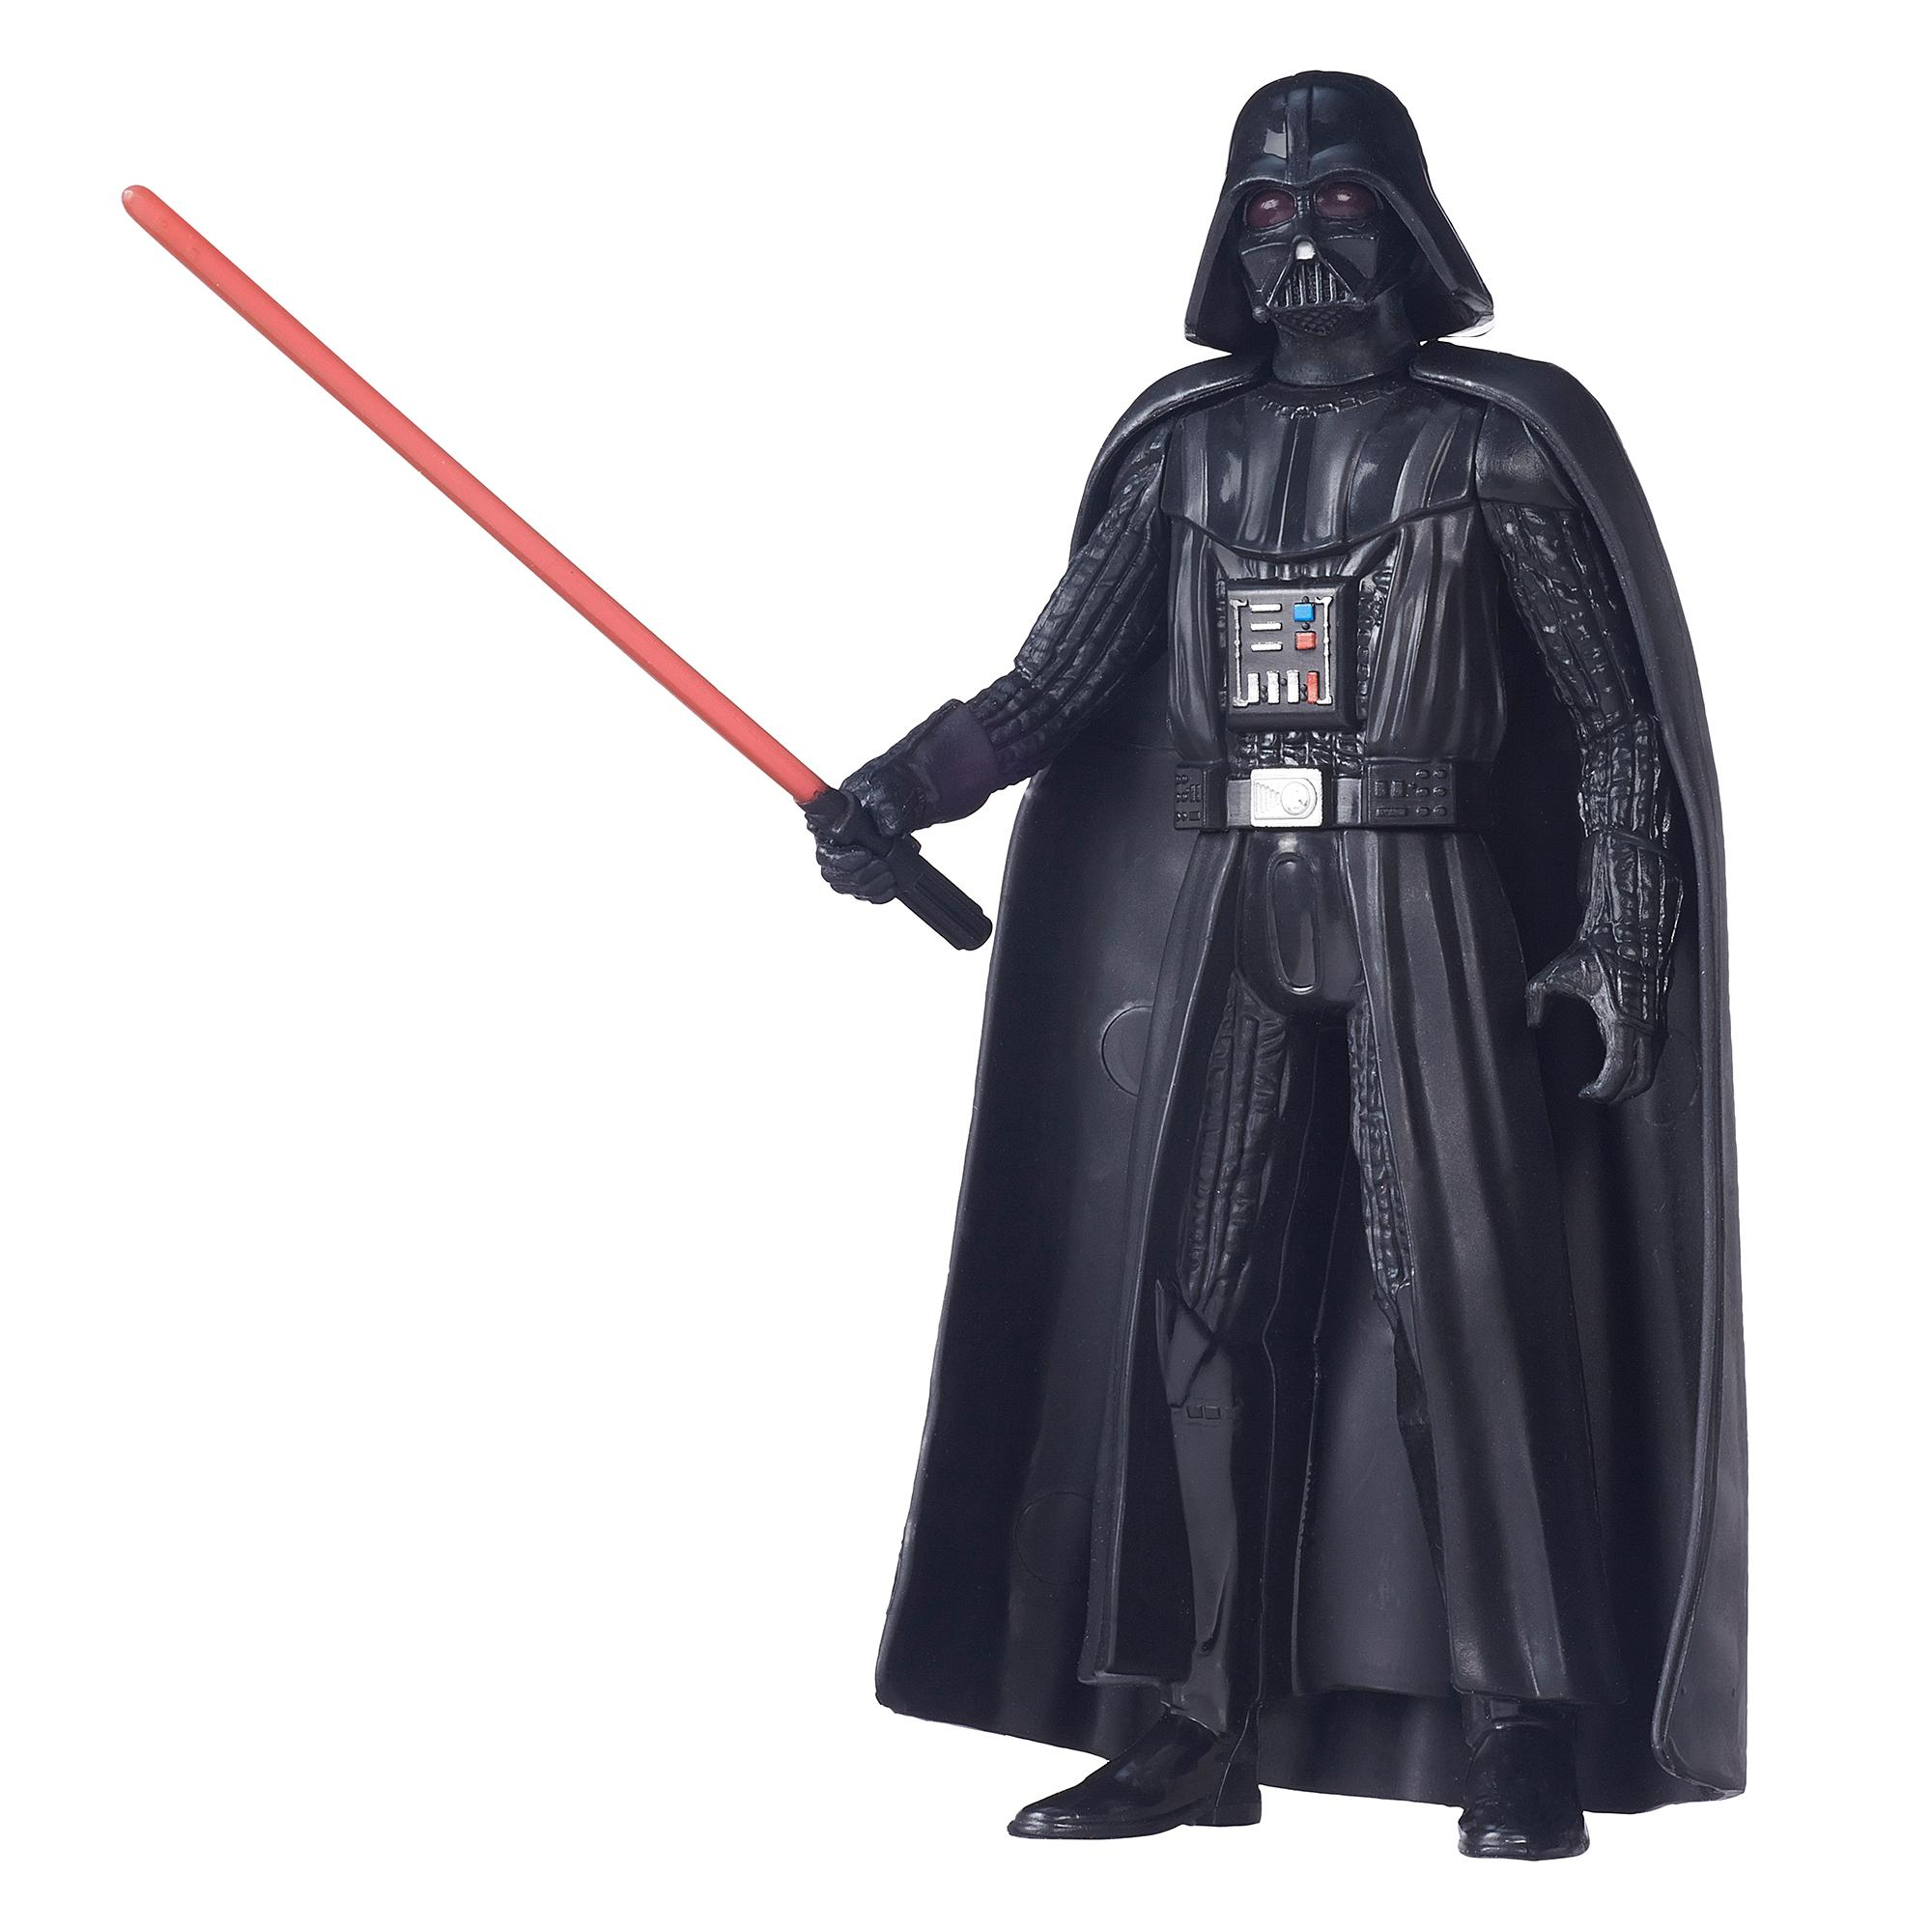 Star Wars Return of the Jedi 6-Inch Darth Vader